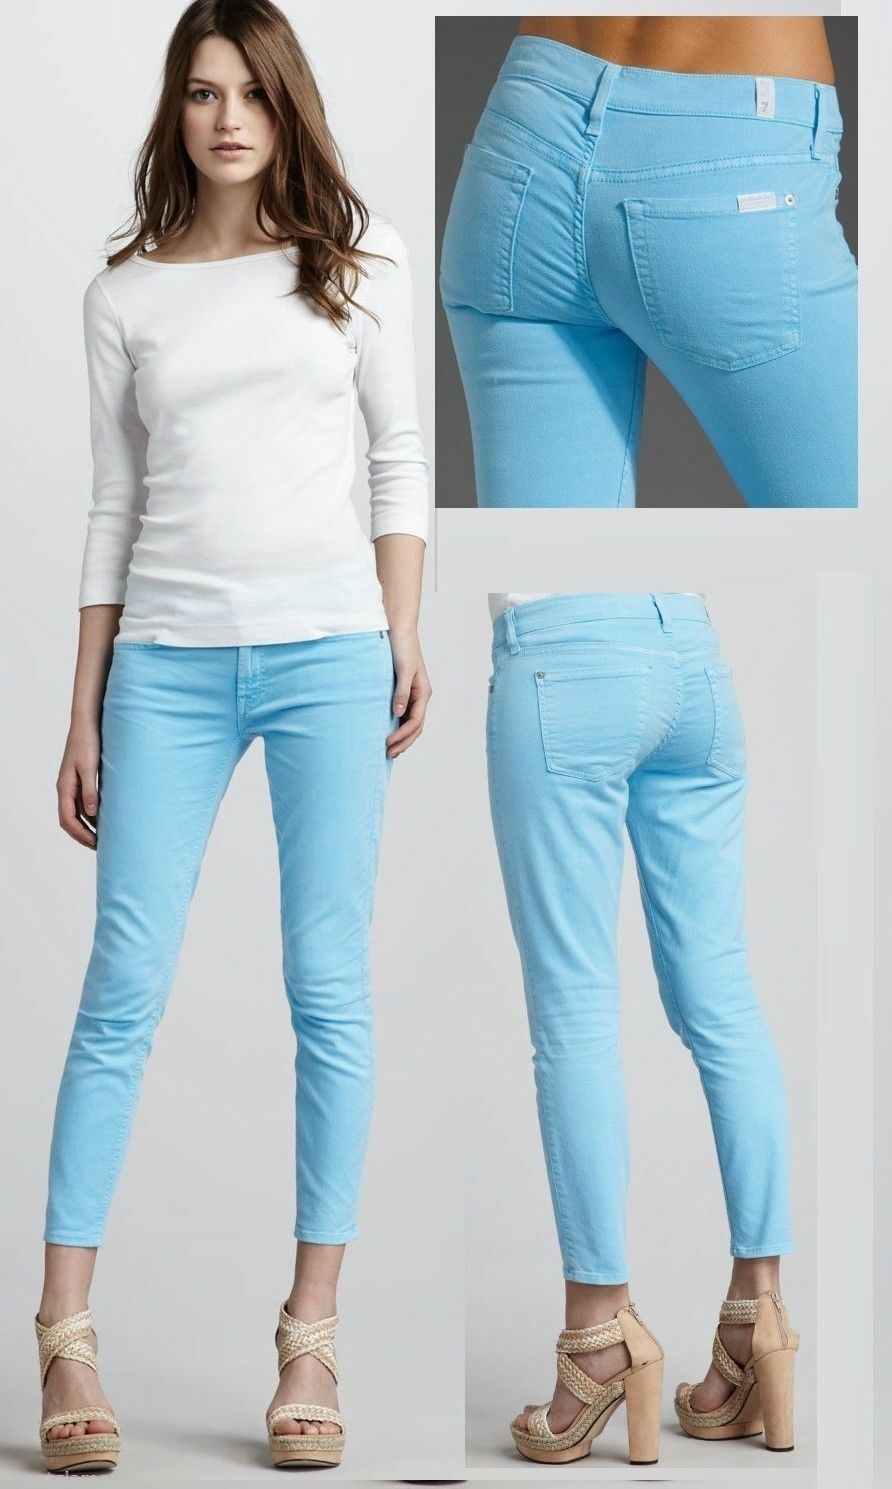 169 7 For All Mankind Cropped Skinny Neon bluee colord Jeans